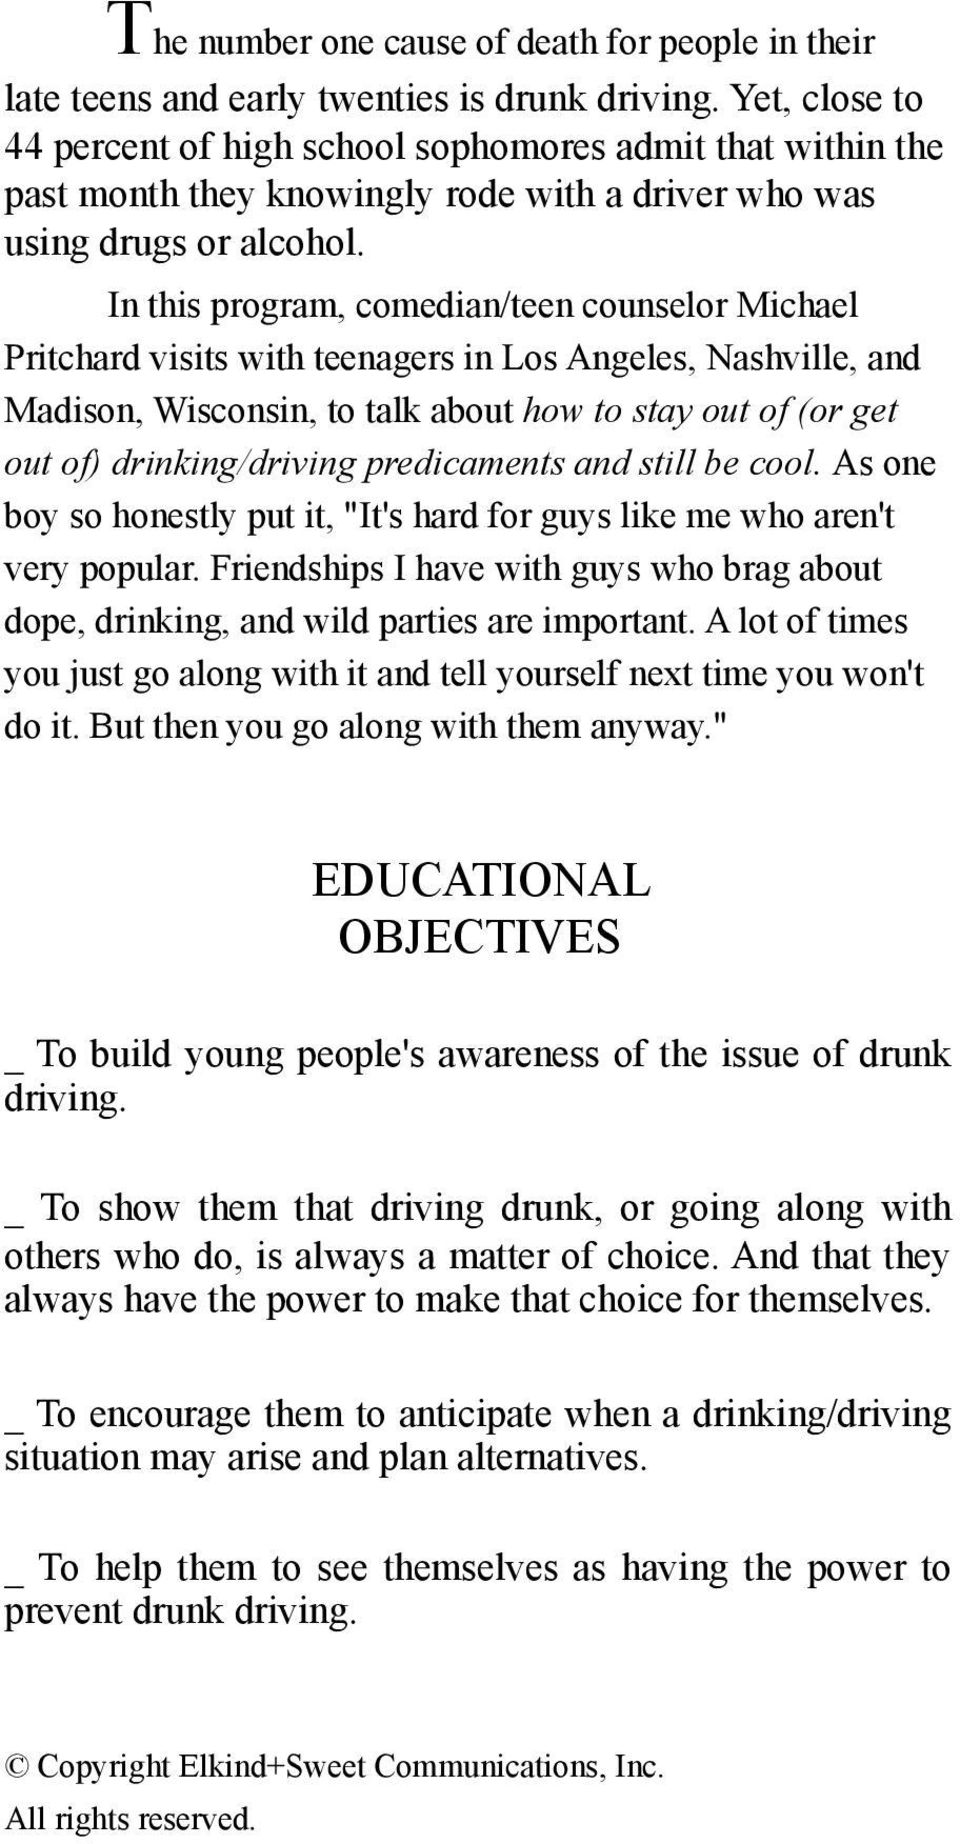 In this program, comedian/teen counselor Michael Pritchard visits with teenagers in Los Angeles, Nashville, and Madison, Wisconsin, to talk about how to stay out of (or get out of) drinking/driving